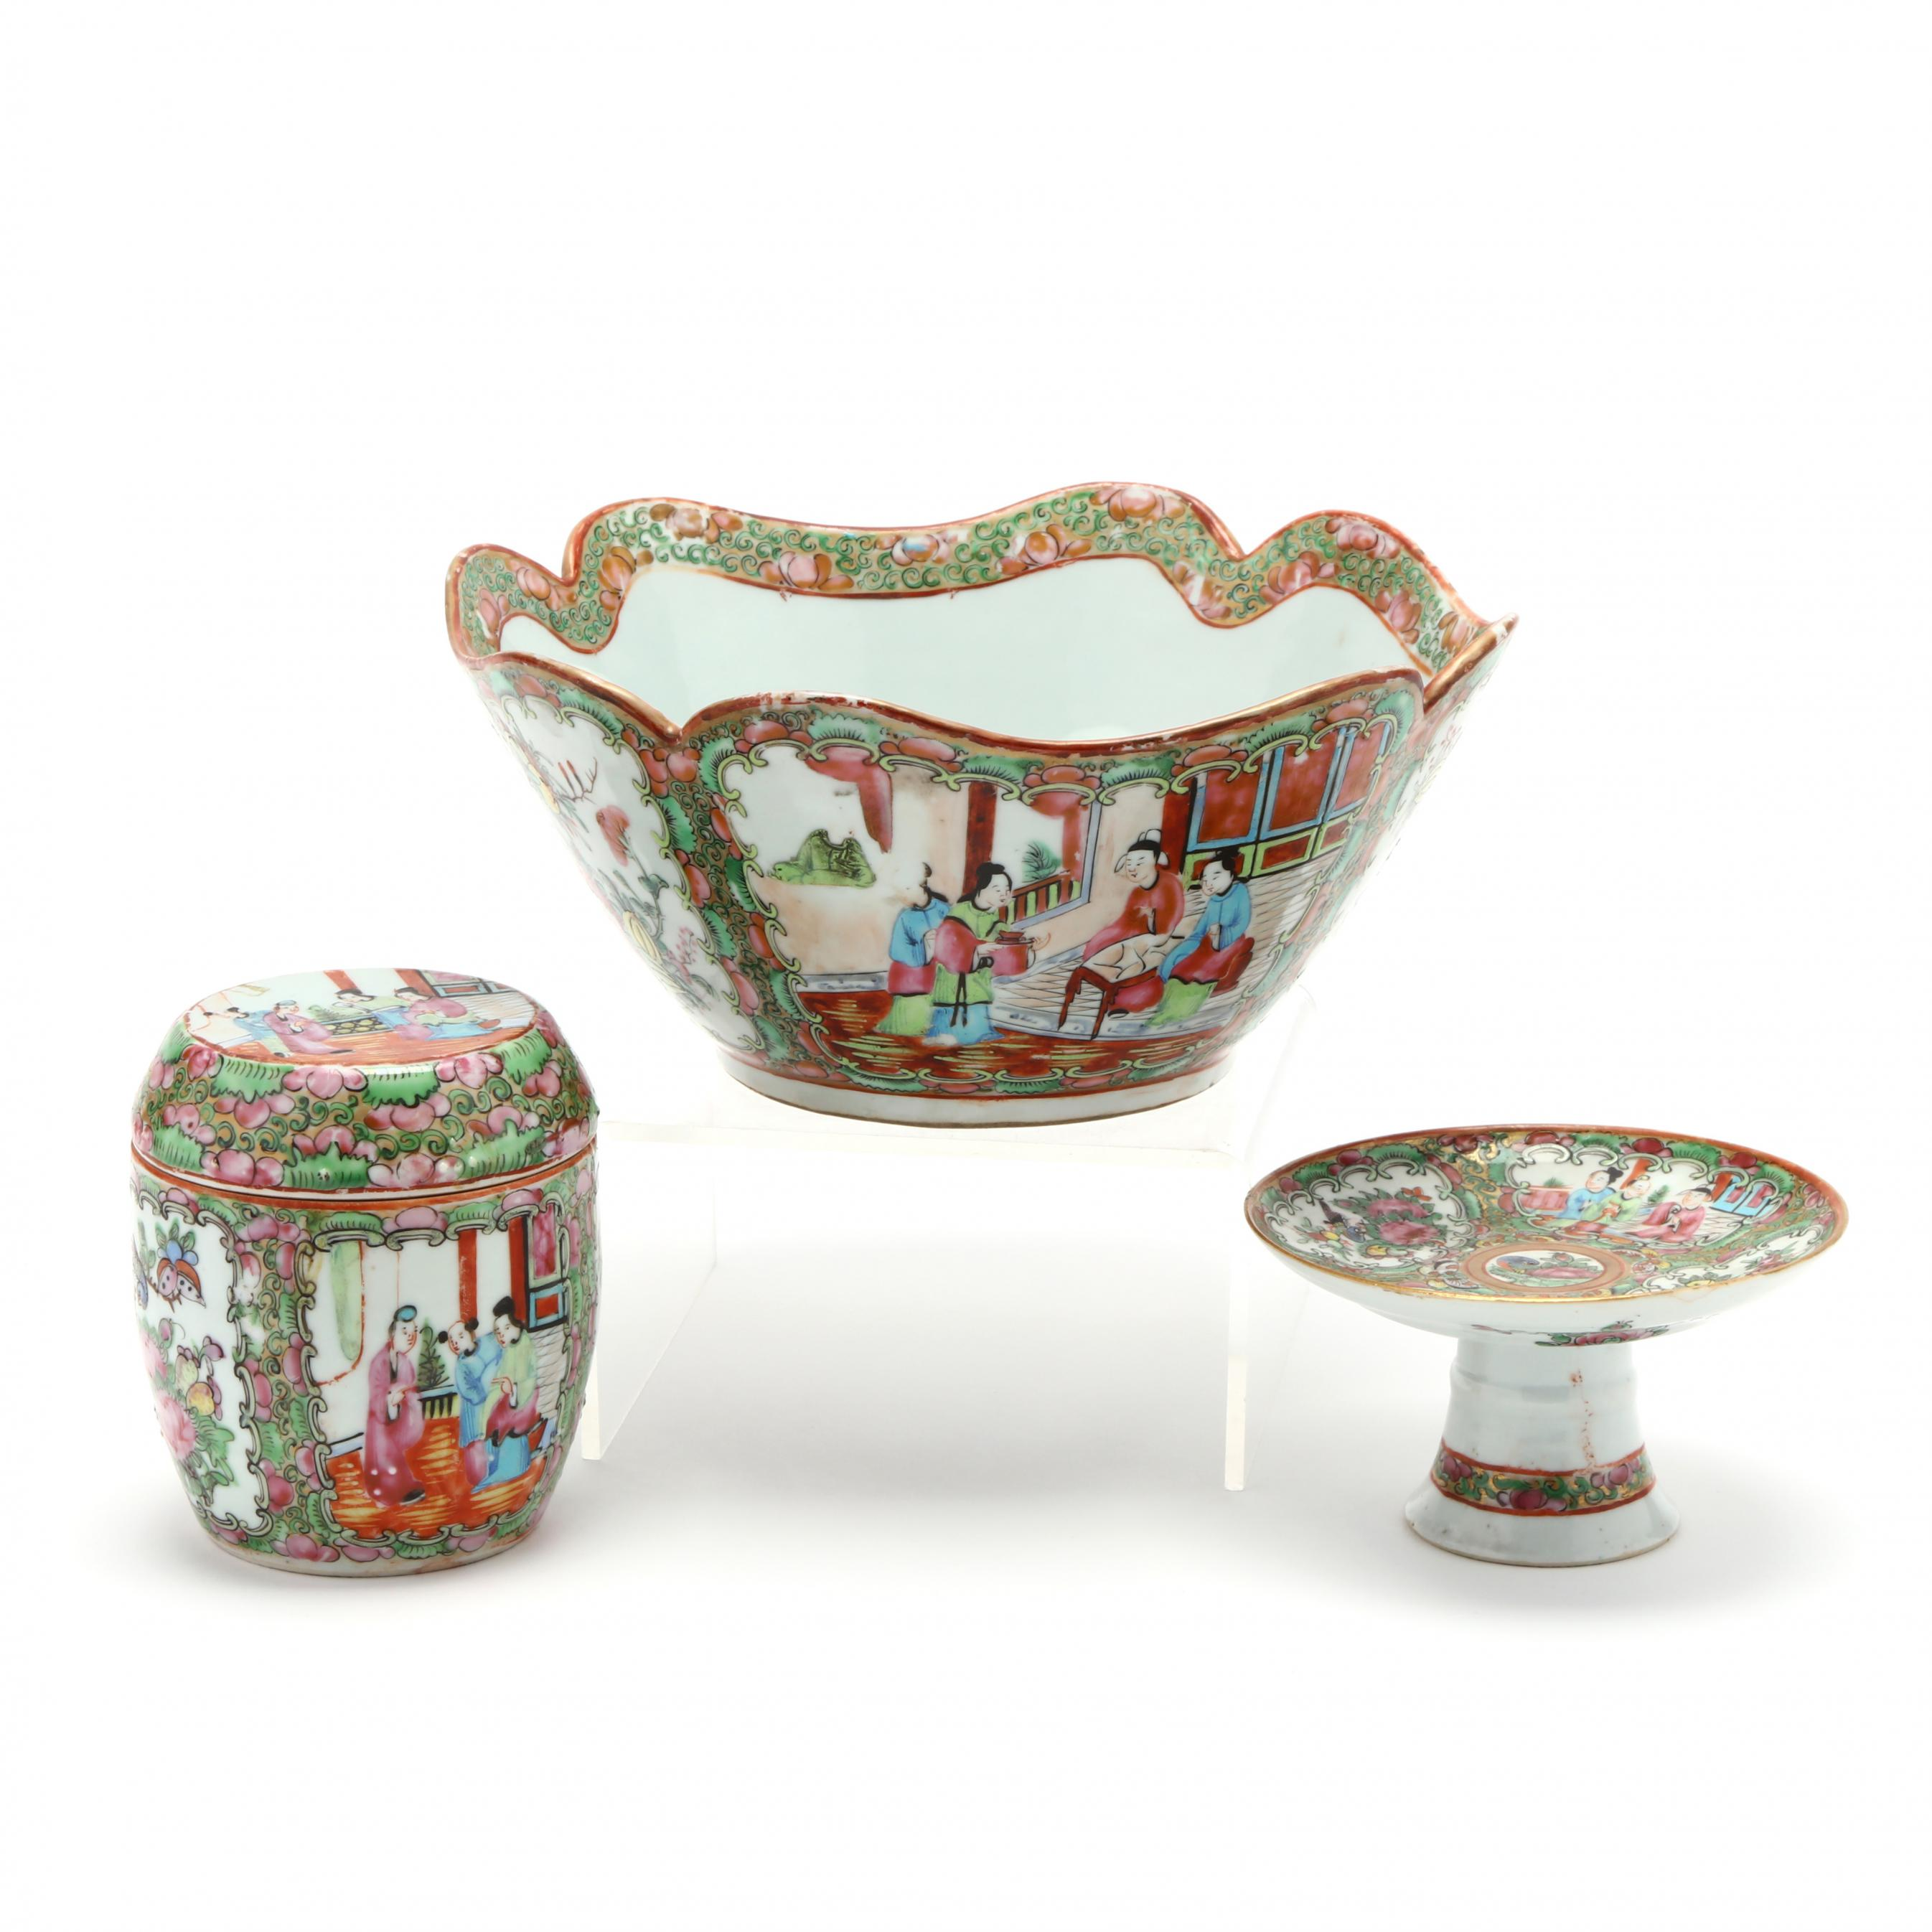 three-pieces-of-rose-medallion-chinese-export-porcelain